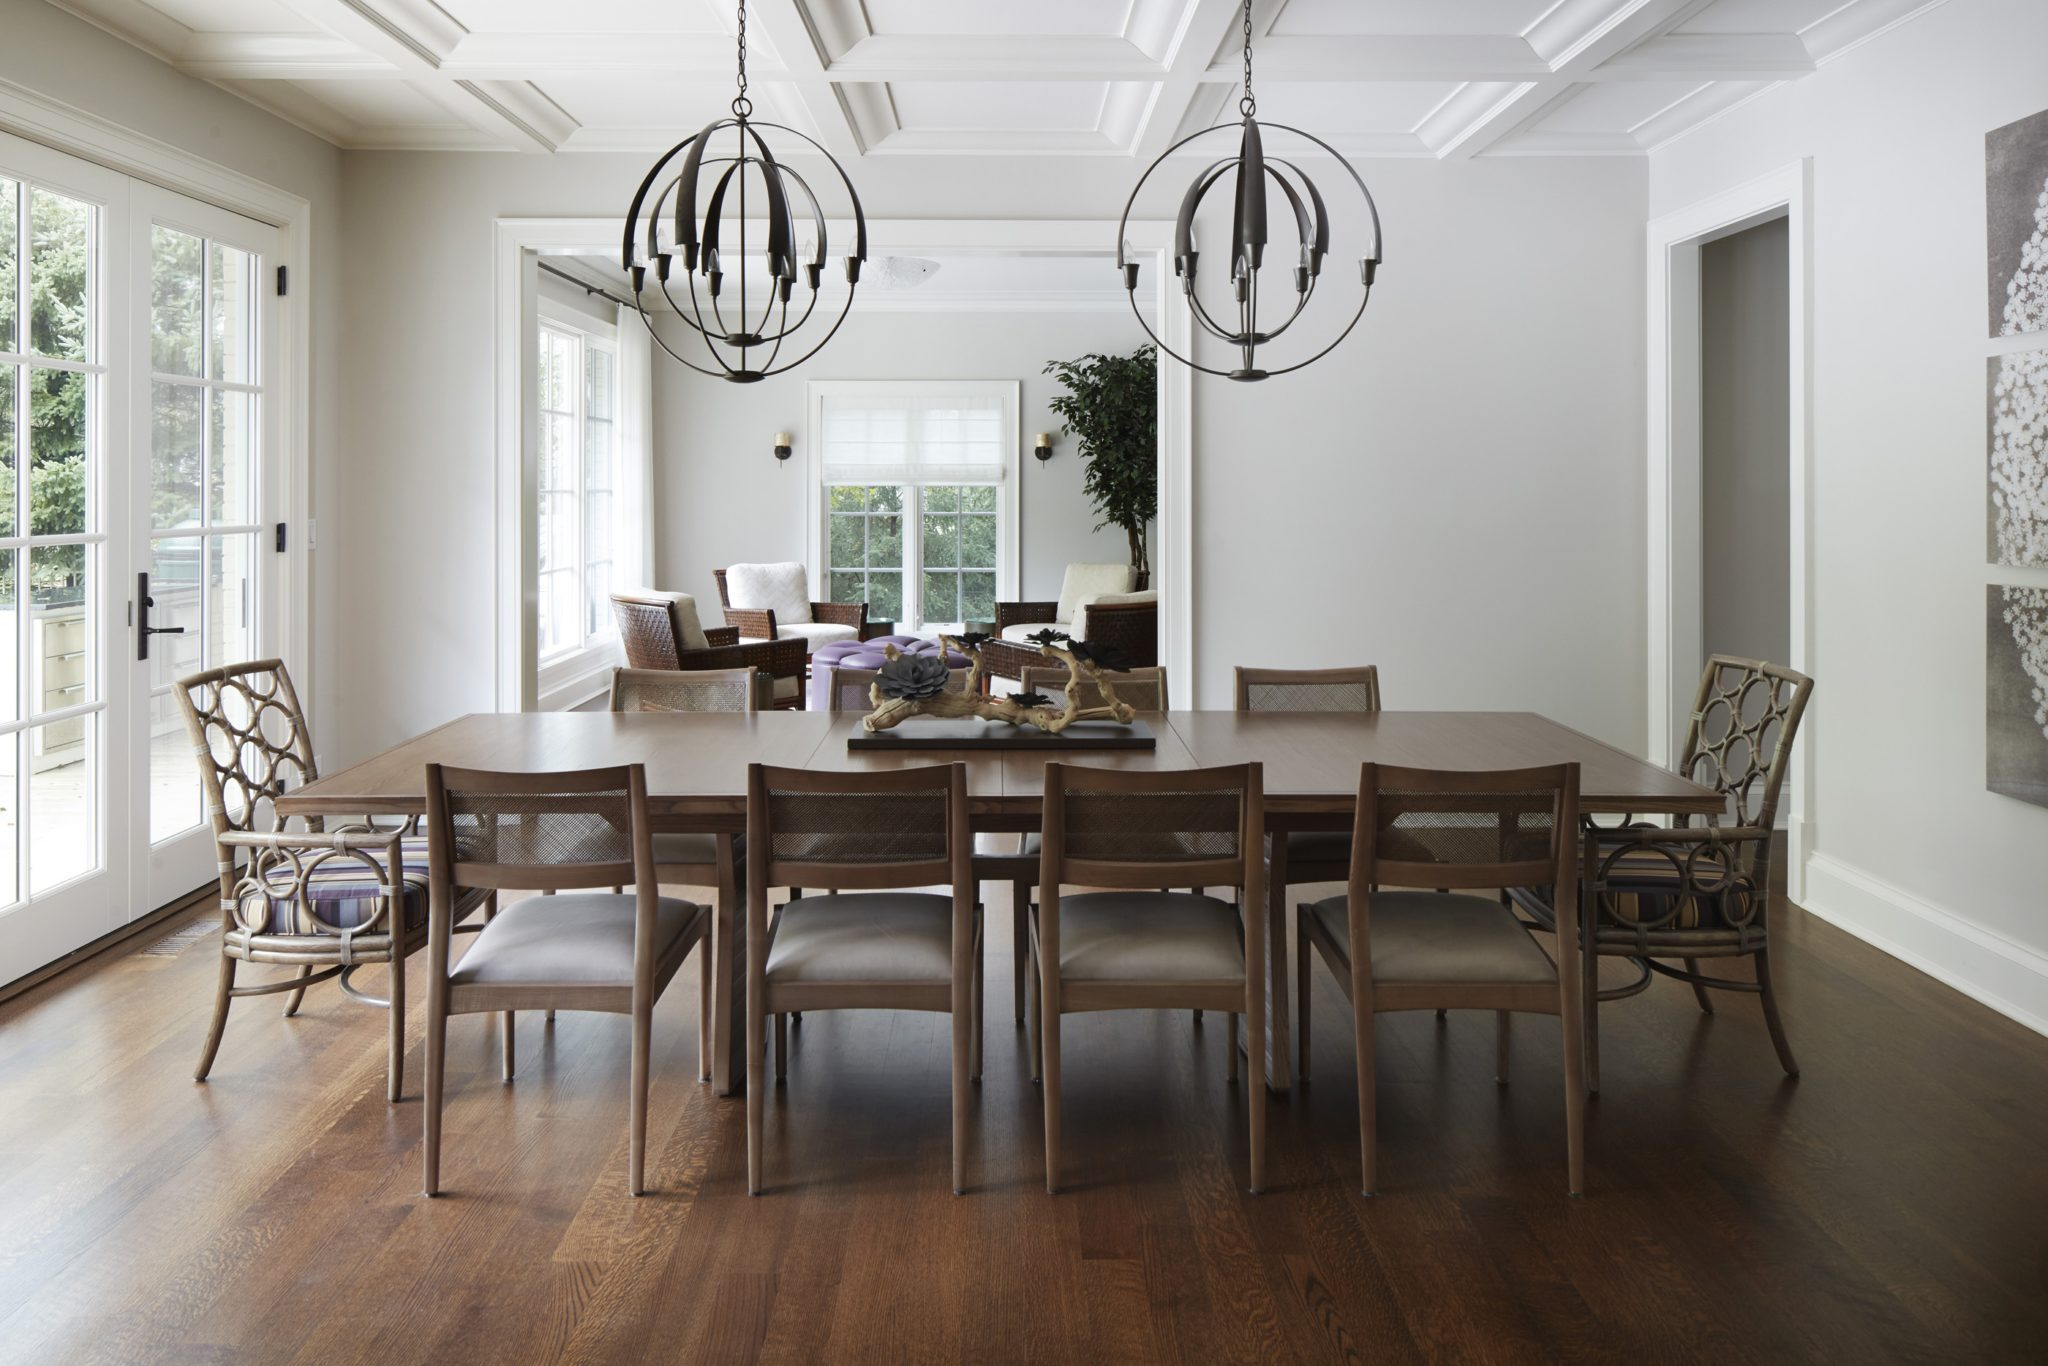 A coffered ceiling adds visual interest to this dining room by Morgante-Wilson